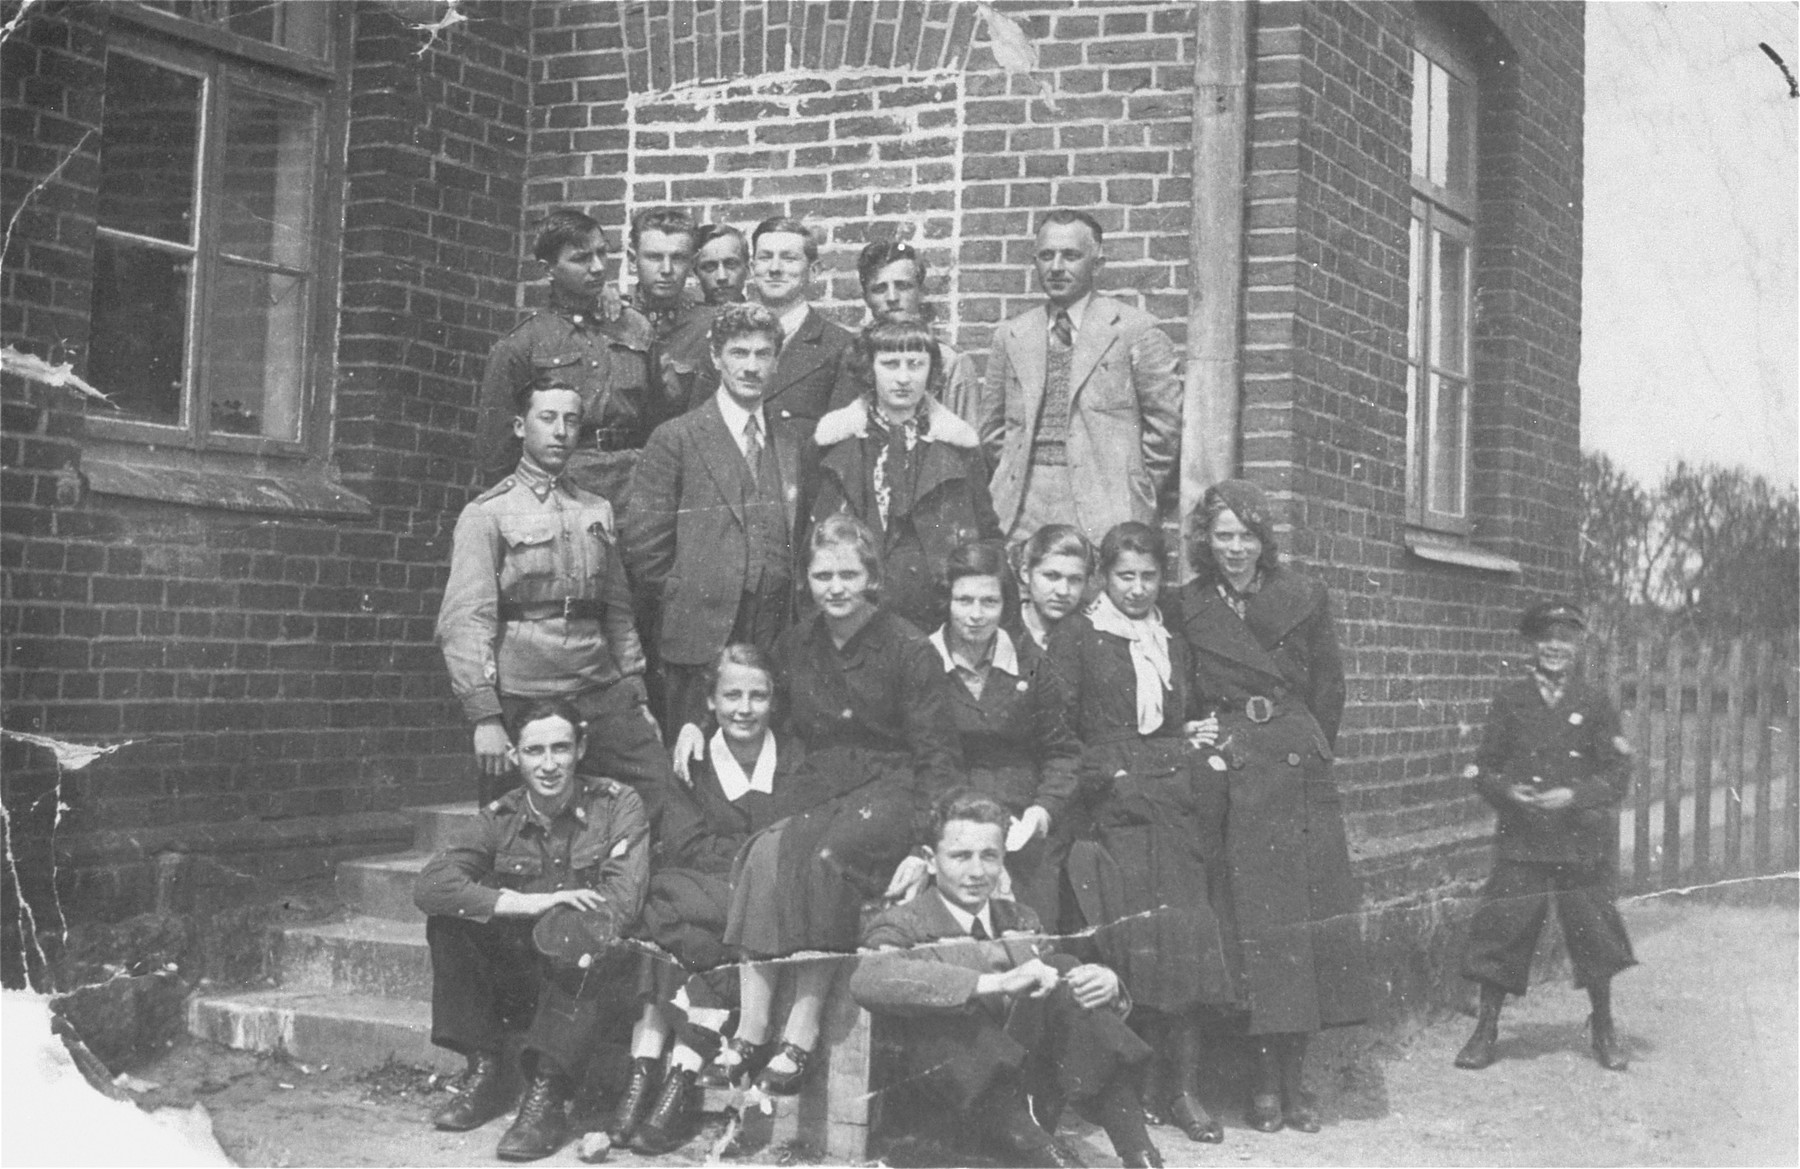 Group portrait of students and teachers in a public Polish high school in Wegrow, where many of the students were Jewish.    Wladyslaw Wojcik is pictured standing in the second row, first on the left.